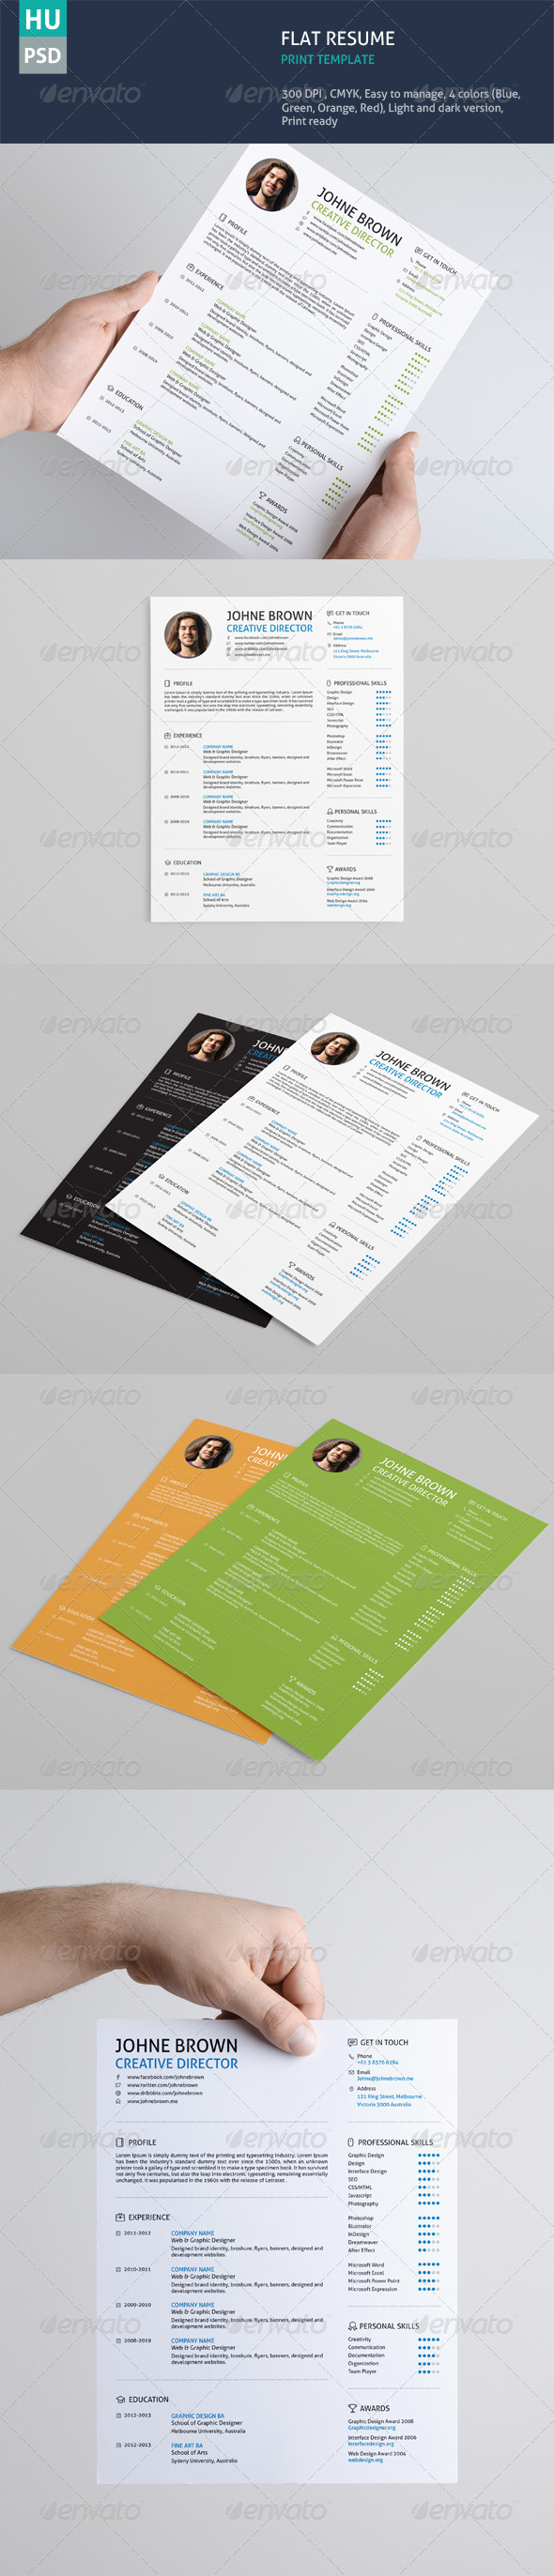 flat resume by bloomthemez graphicriver